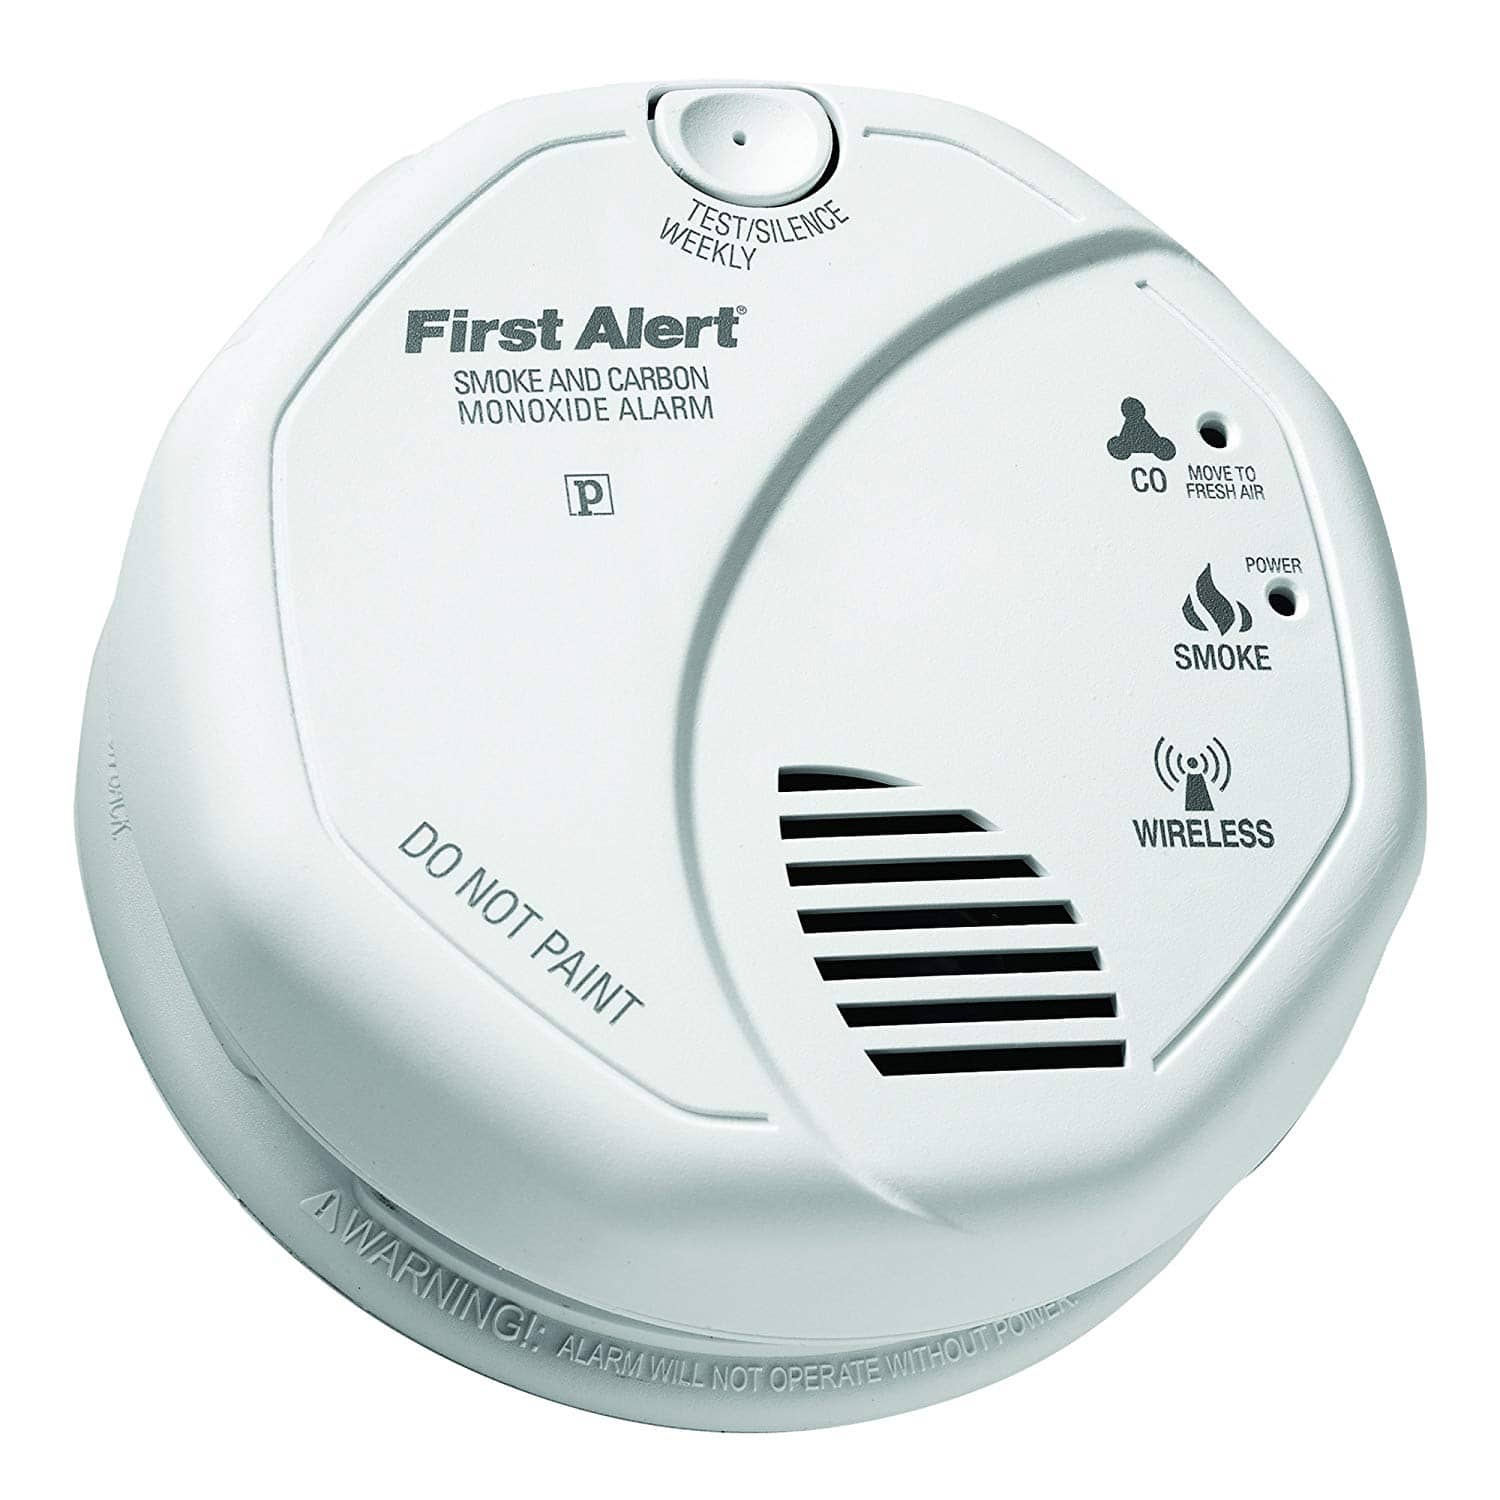 First Alert 2-in-1 Smoke and Carbon Monoxide Alarms Z-Wave $33.73